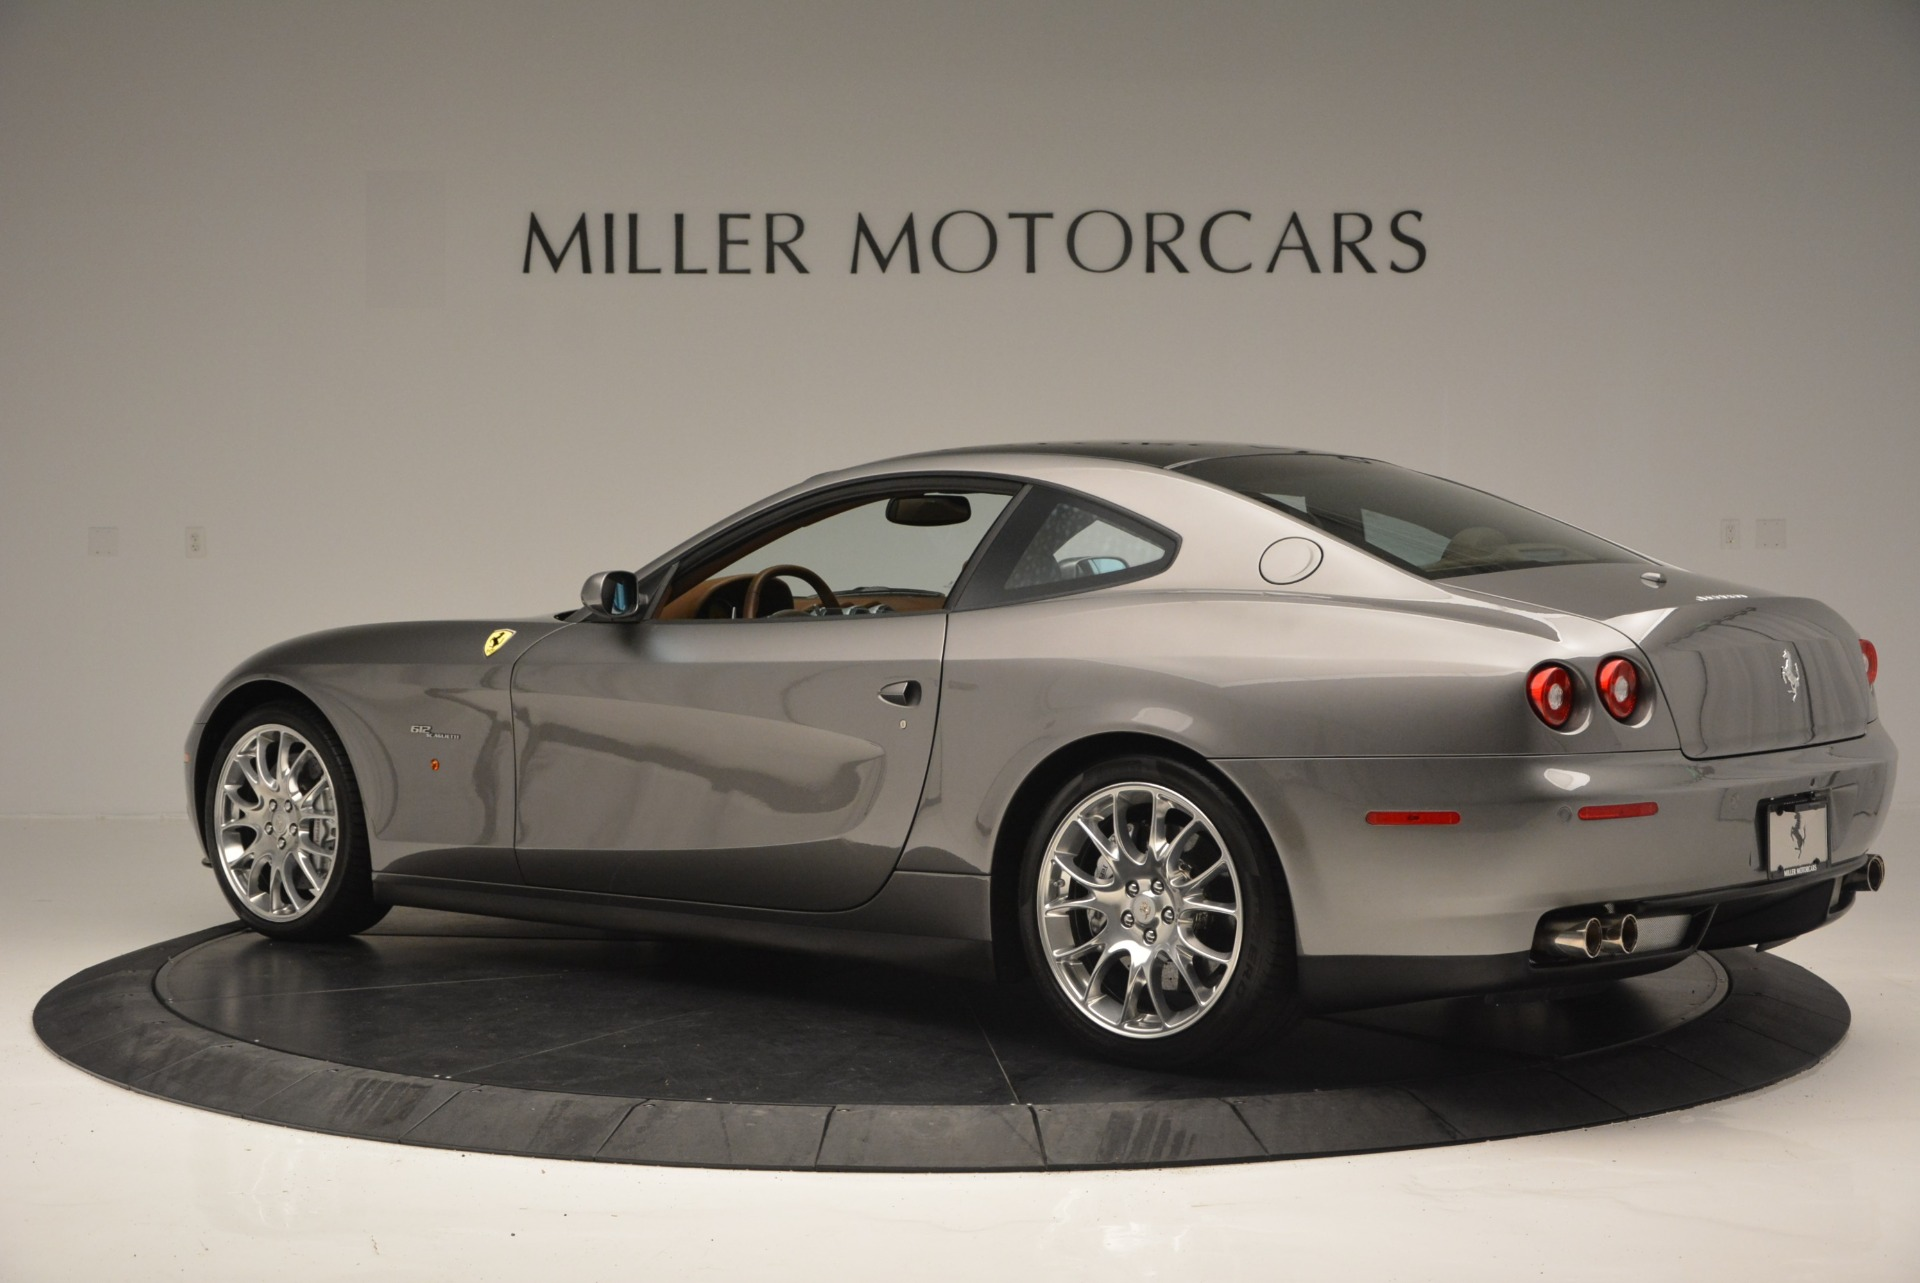 Used 2009 Ferrari 612 Scaglietti OTO For Sale In Greenwich, CT 141_p4